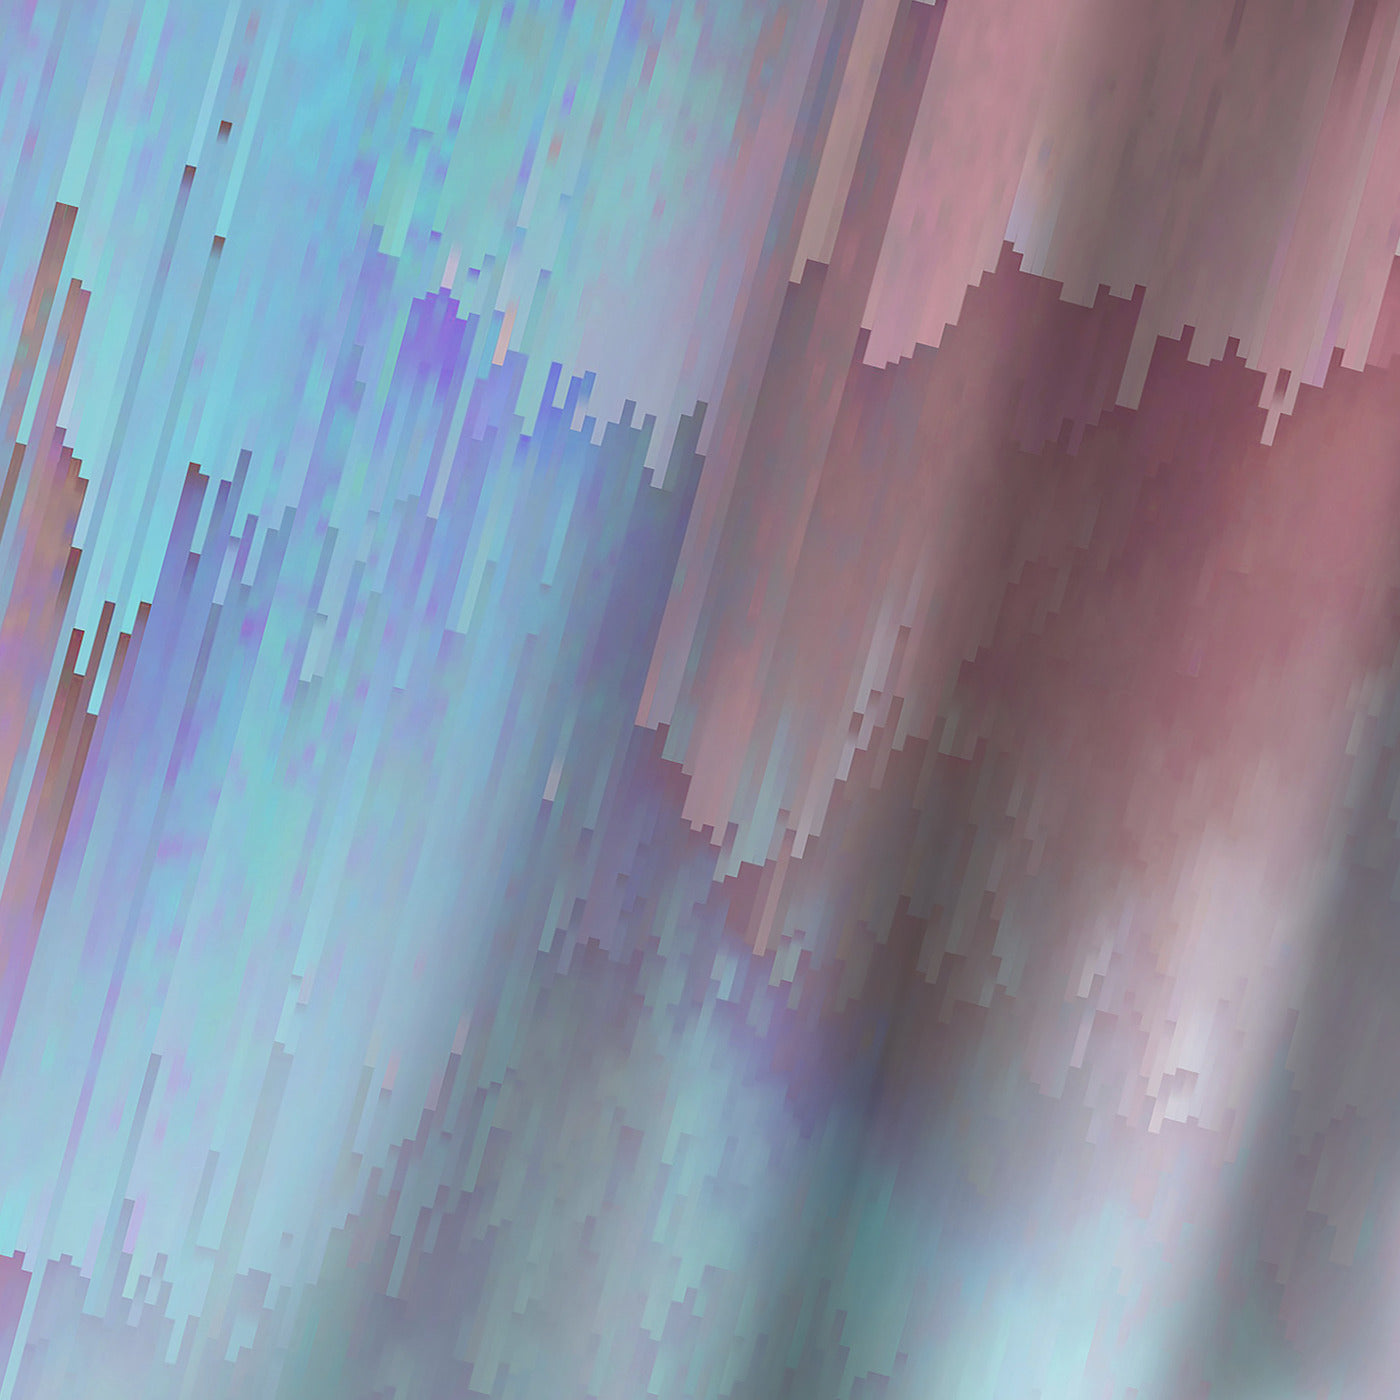 Light Blue And Pink Glitches by Emanuela Carratoni Shower Curtain -  - Americanflat